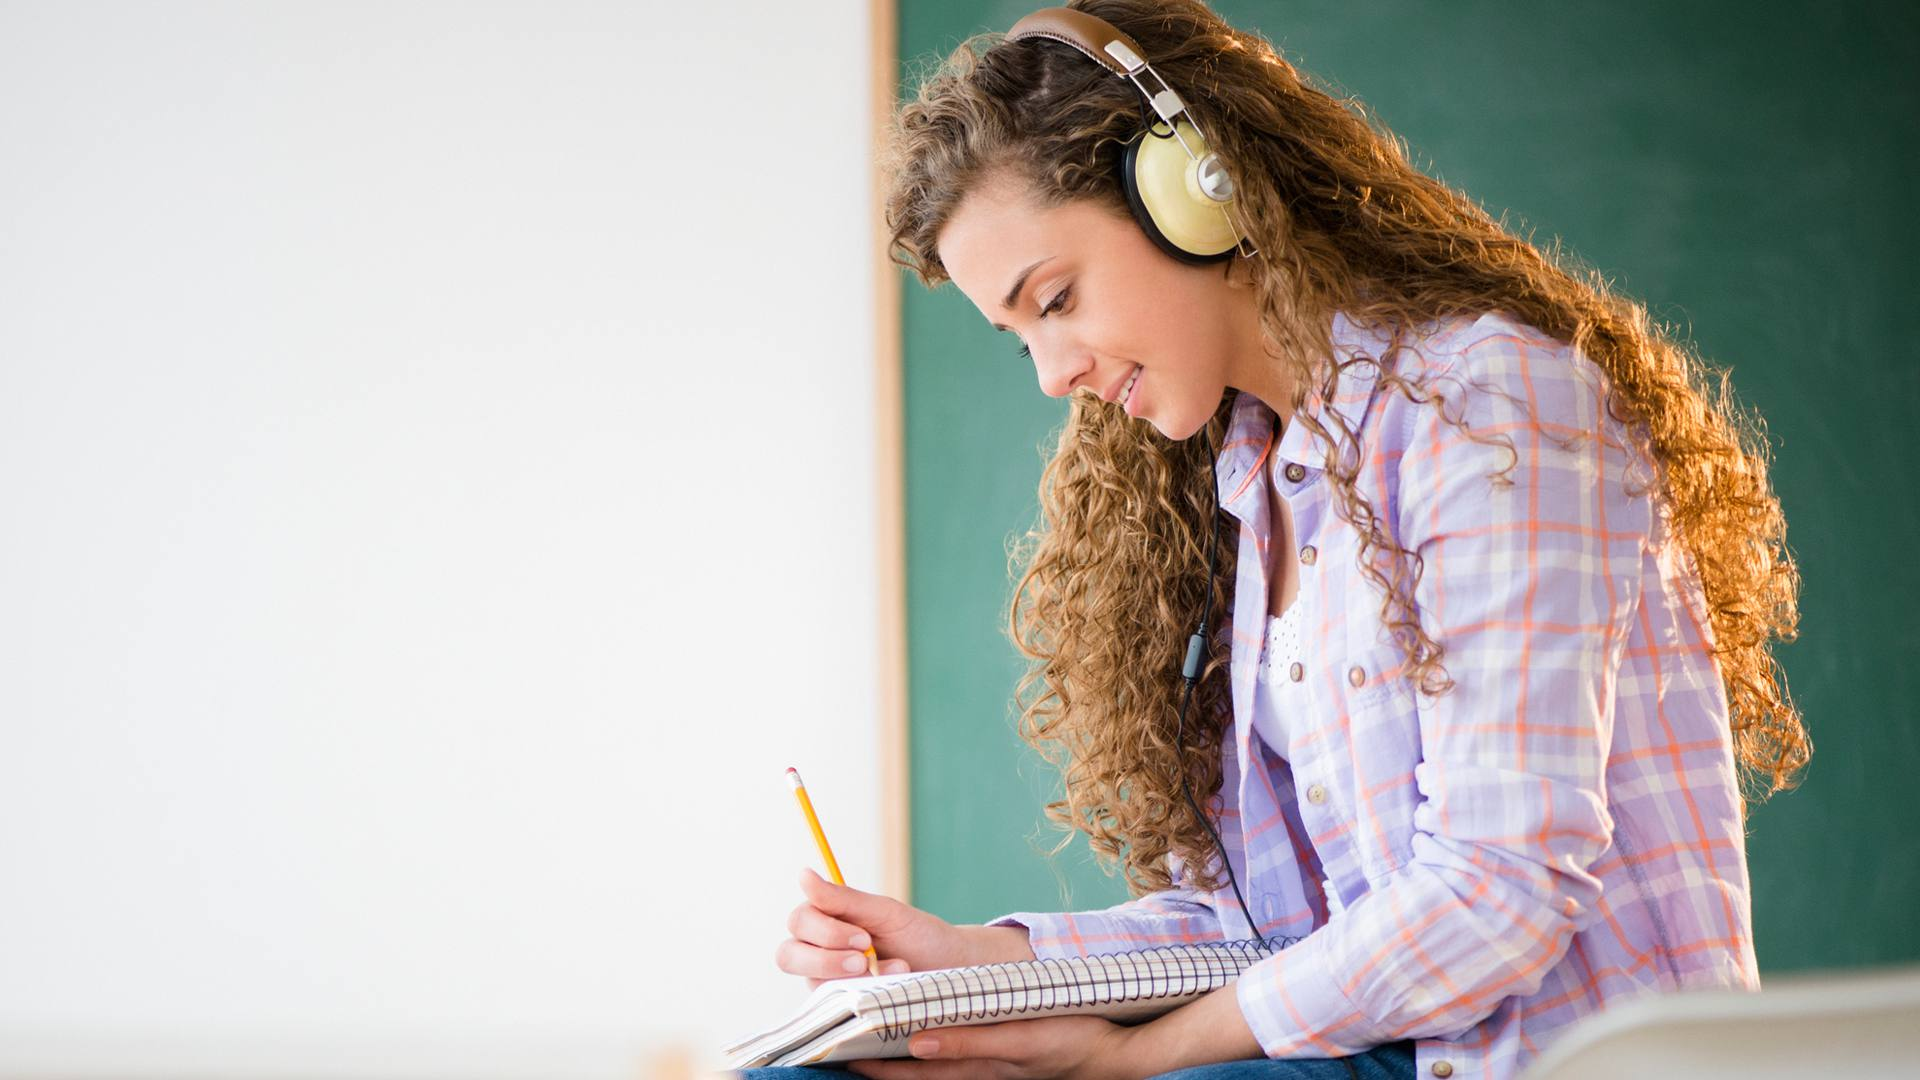 Female student studying with noise-cancelling headphones on